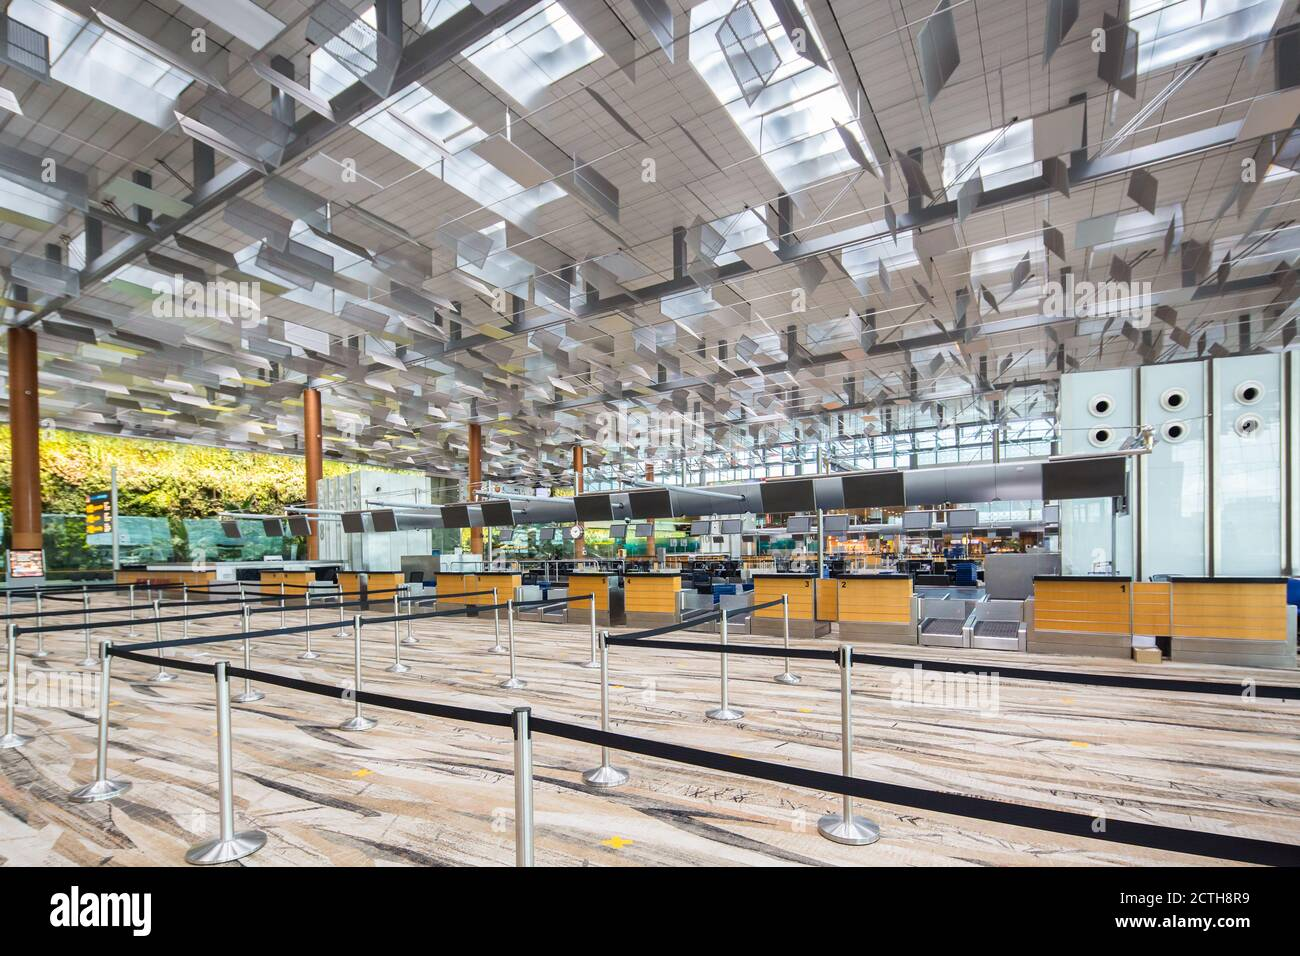 singapore-changi-airport-is-deserted-as-